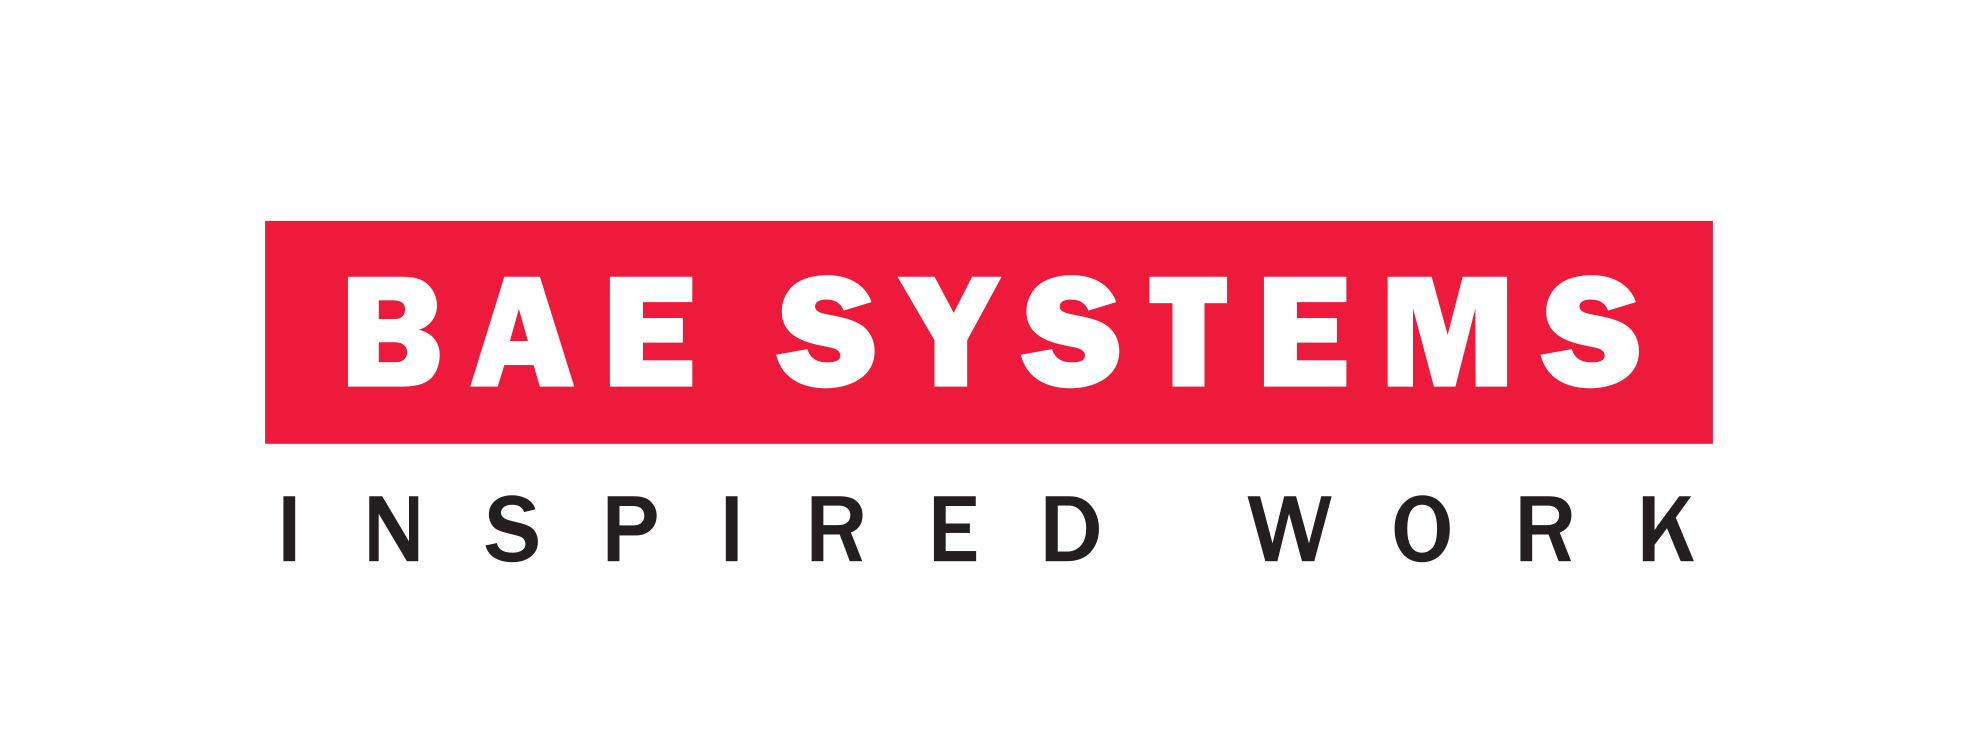 BAE SYSTEMS Selects Alzheimer's Association for Charitable Employee Giving Image